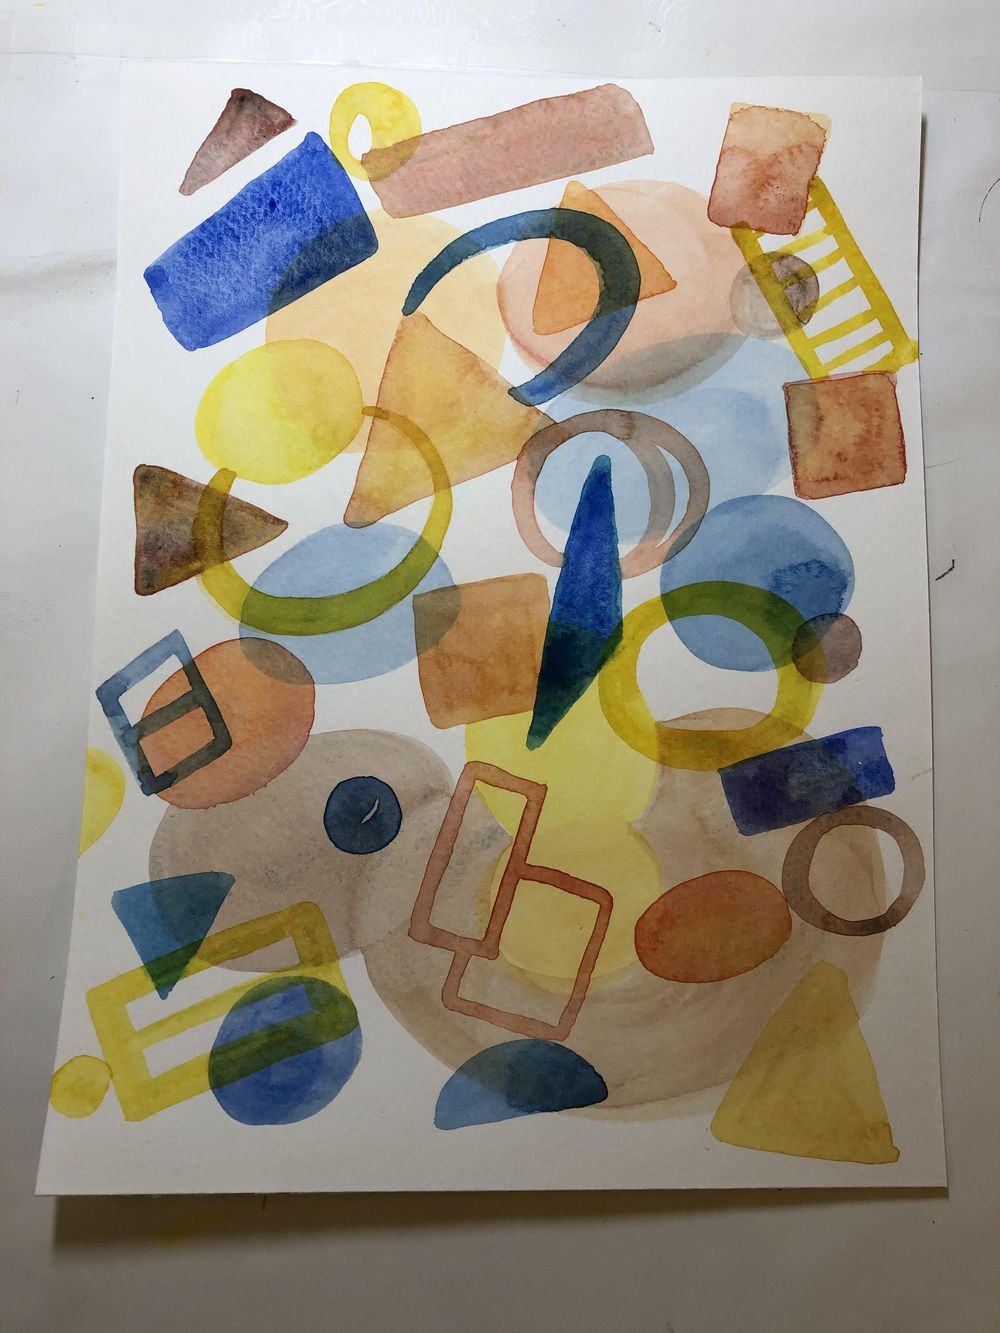 Watercolor - Shapes - image 2 - student project